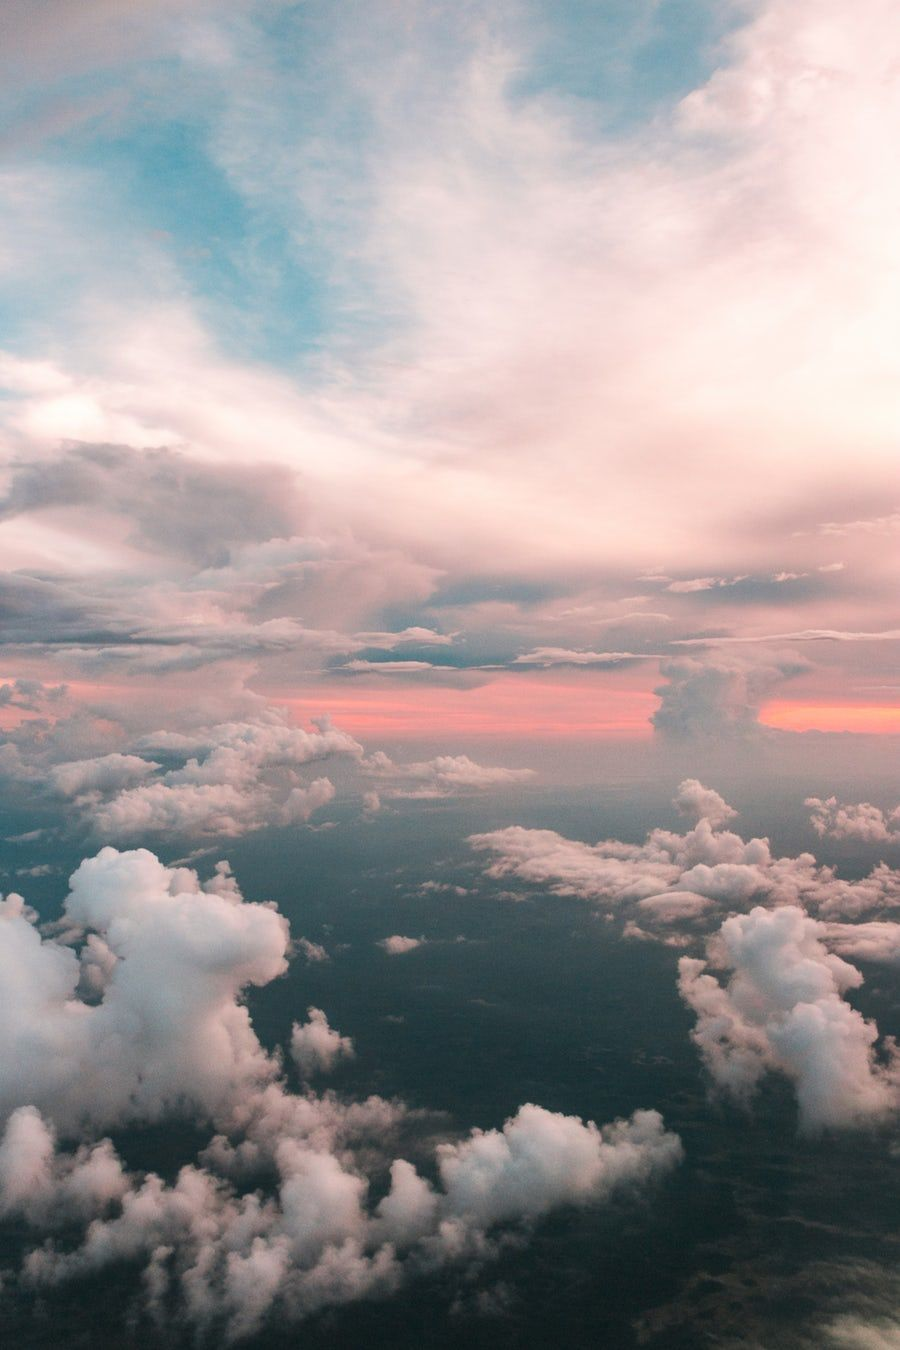 Calm Sky During Daytime Nature Photography Sky Aesthetic Landscape Photography